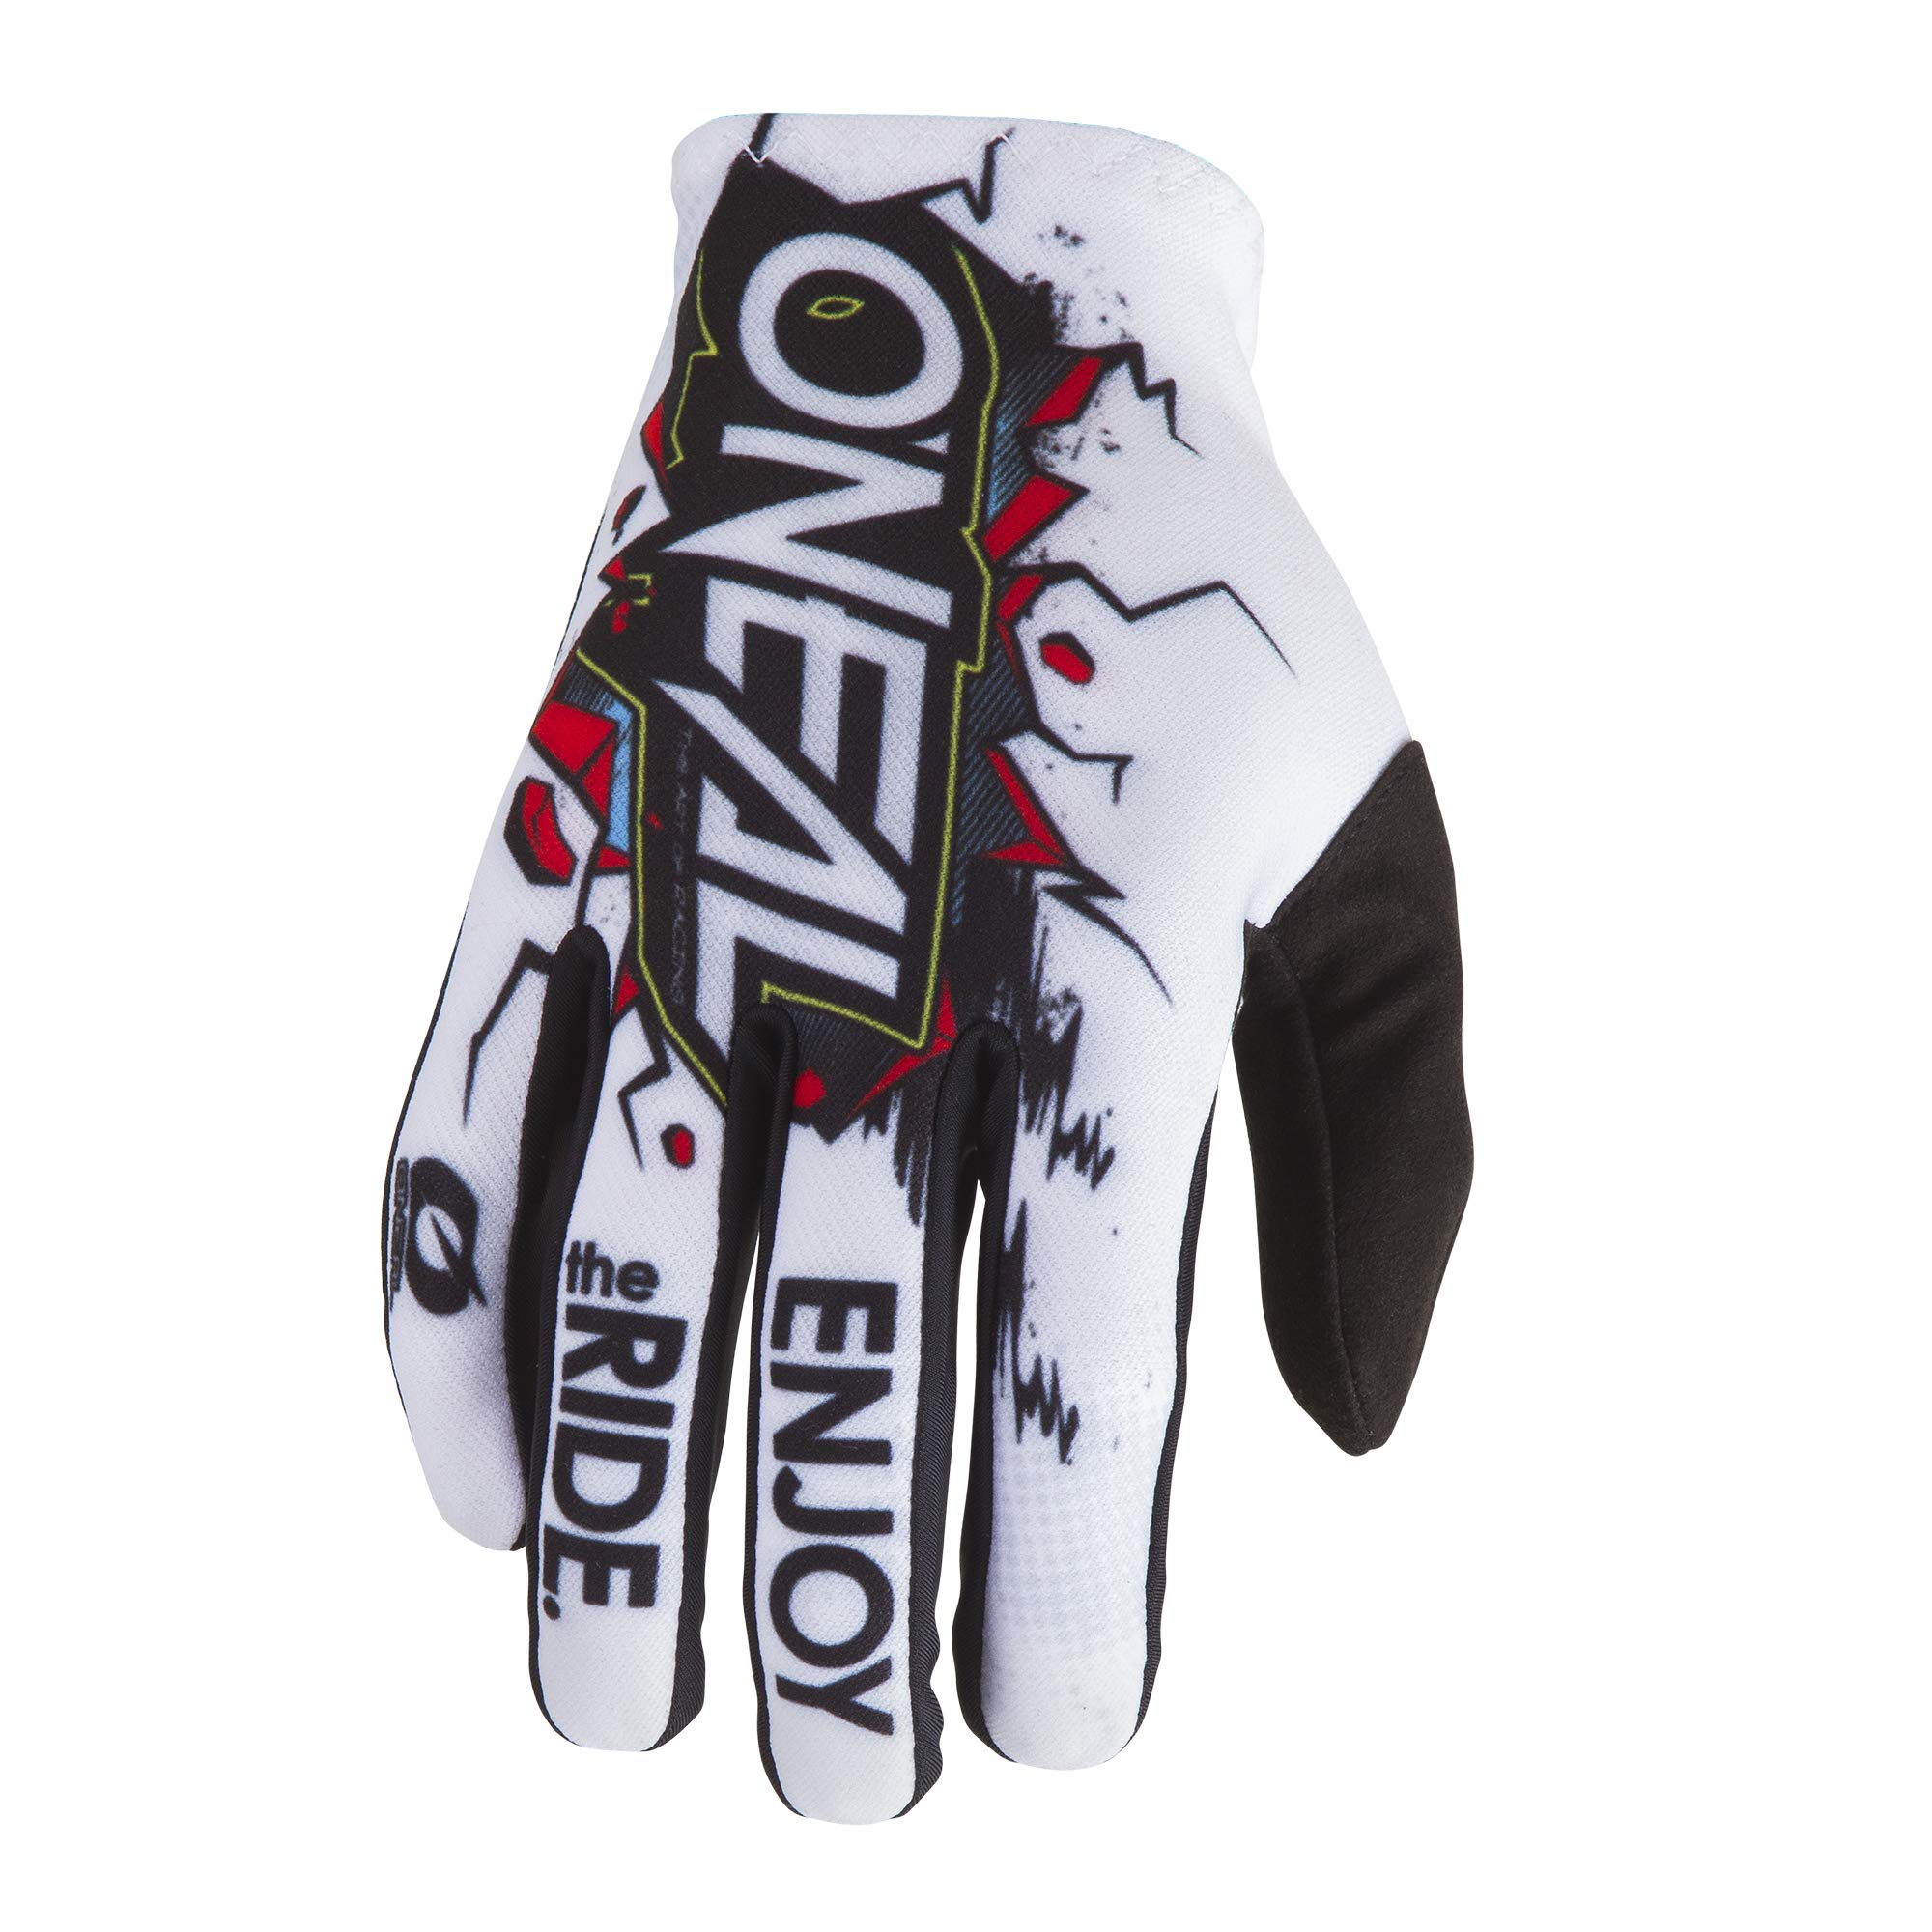 ONeal Matrix Unisex-Adult Glove White, 11 2 Pack